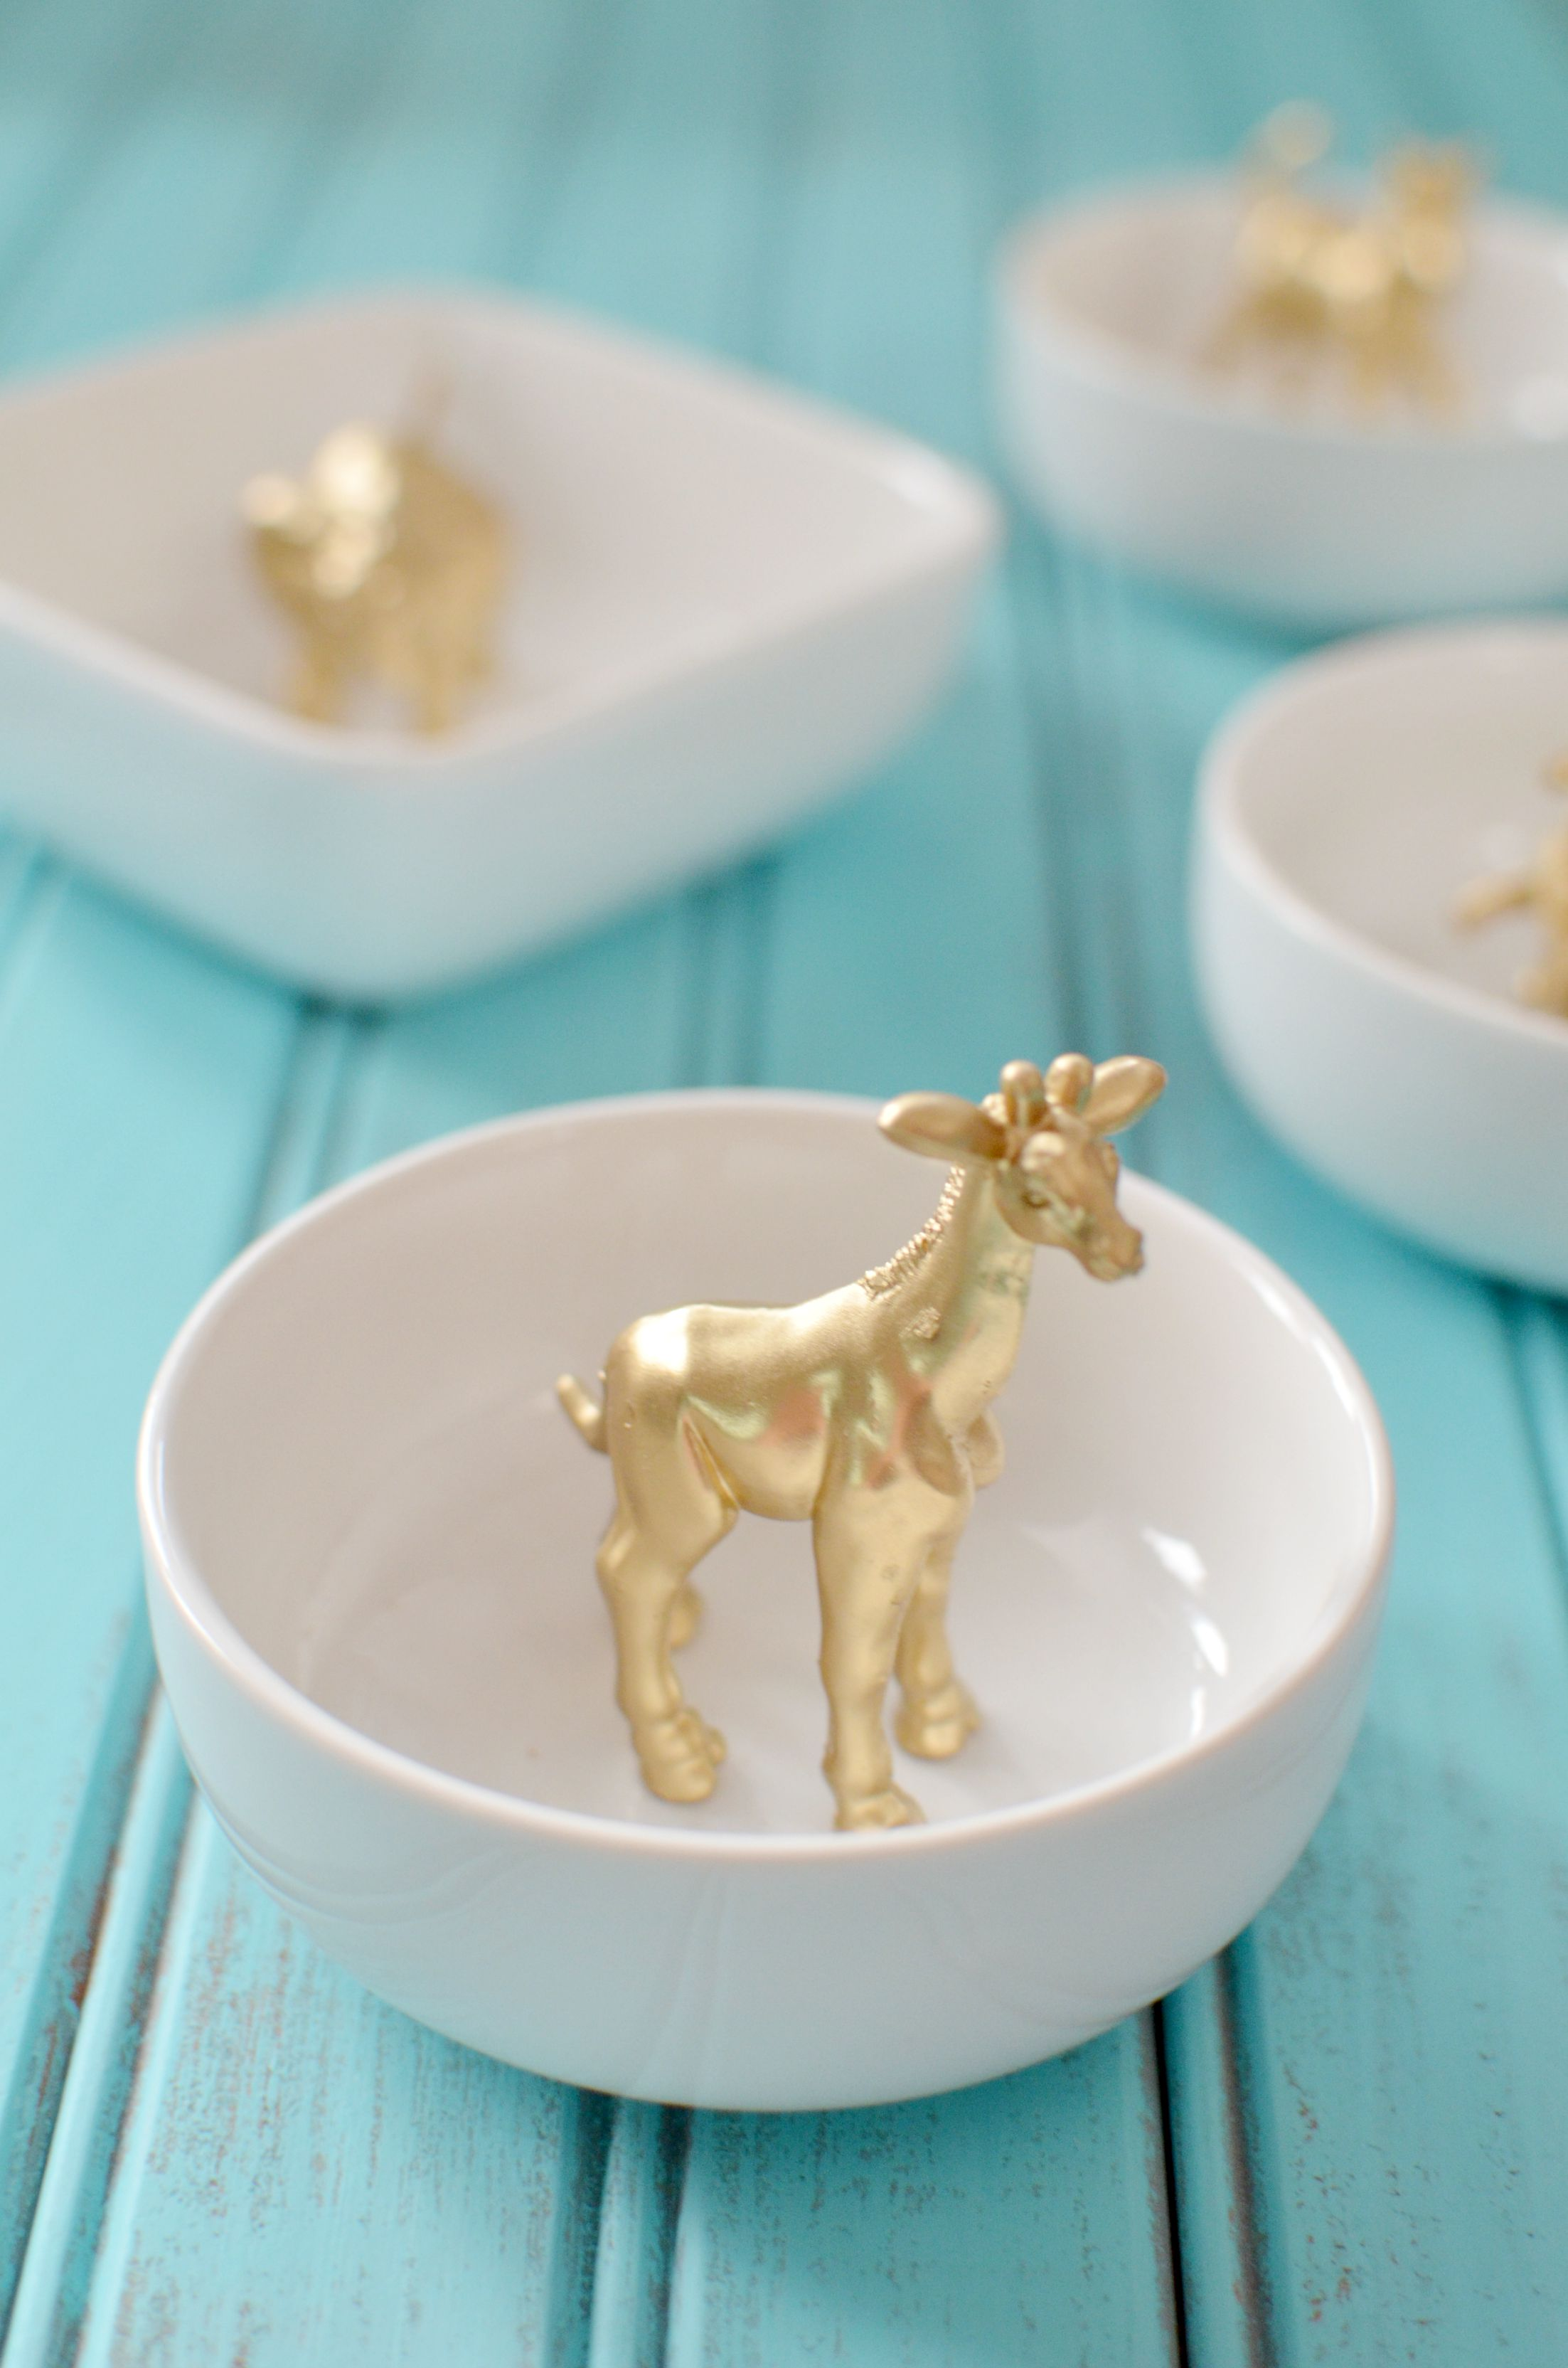 gold-giraffe-ring-dish